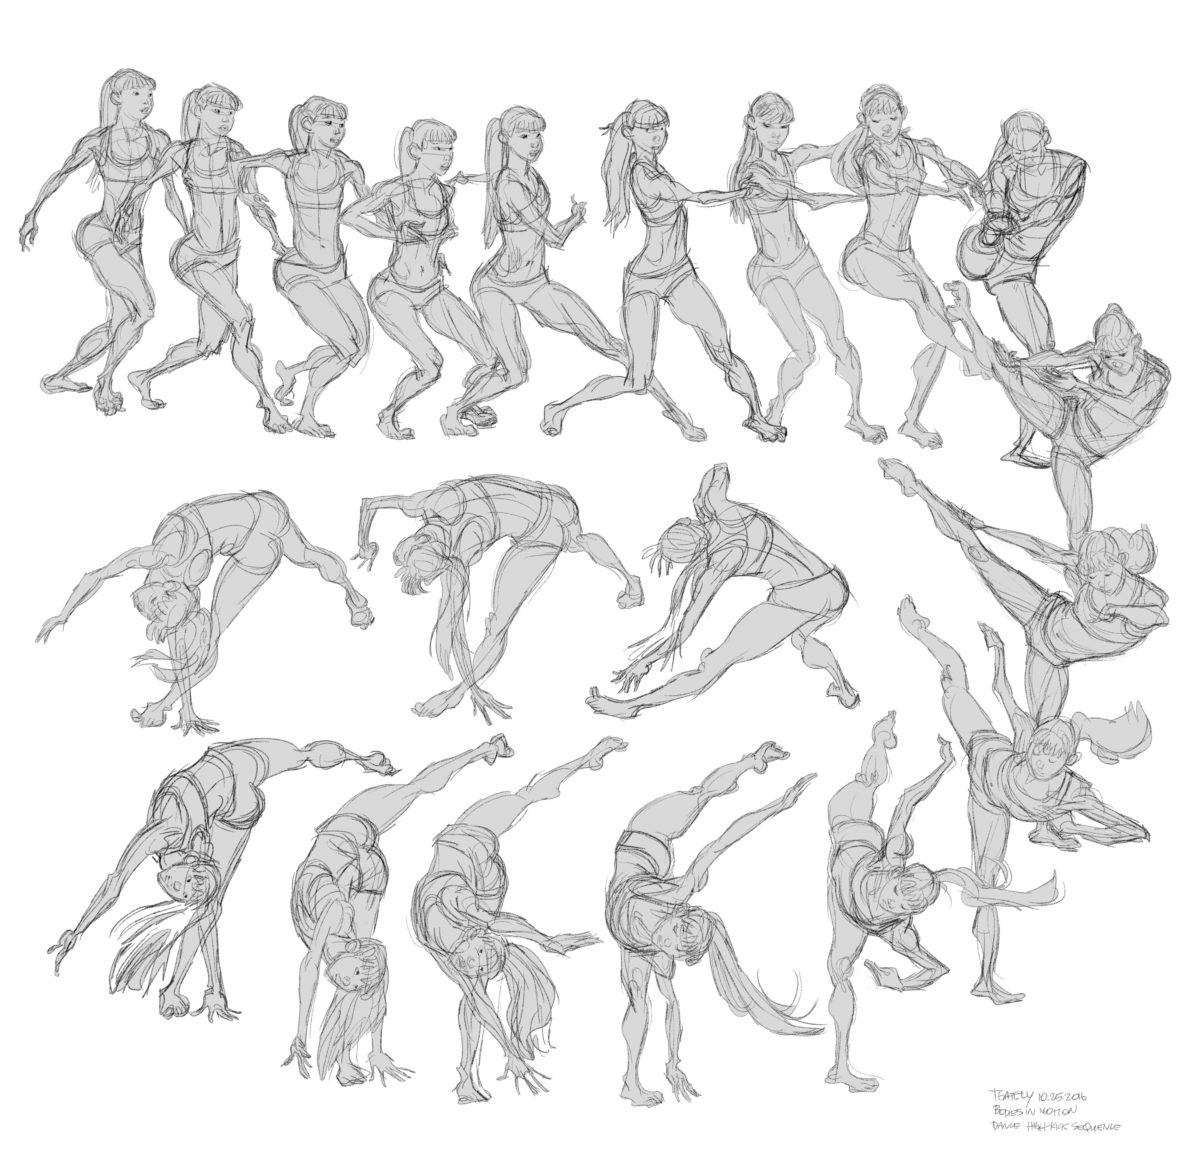 Gesture drawings from Pixar Animator Tom Gately using Bodies in Motion